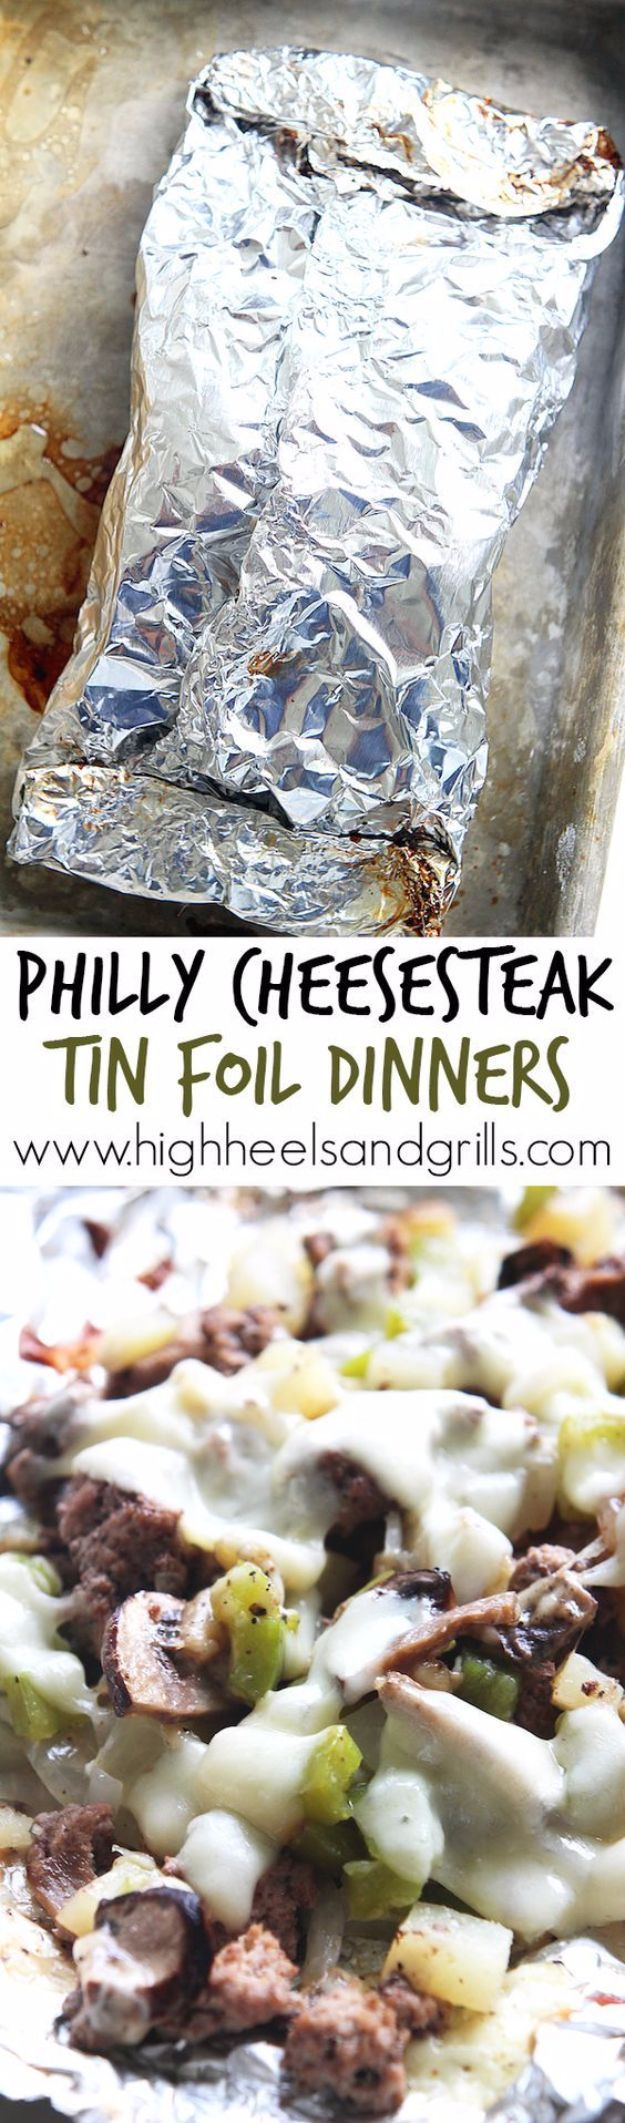 These 34 Tin Foil Recipes Are Perfect for Camping or An Easy Mess Free Dinner | Tin Foil Camp... These 34 Tin Foil Recipes Are Perfect for Camping or An Easy Mess Free Dinner | Tin Foil Camping Meals | Meal Planning For Group Camping | Tin Foil Dinners For Kids | Meal Planning For Group Camping THAT DON'T FLY